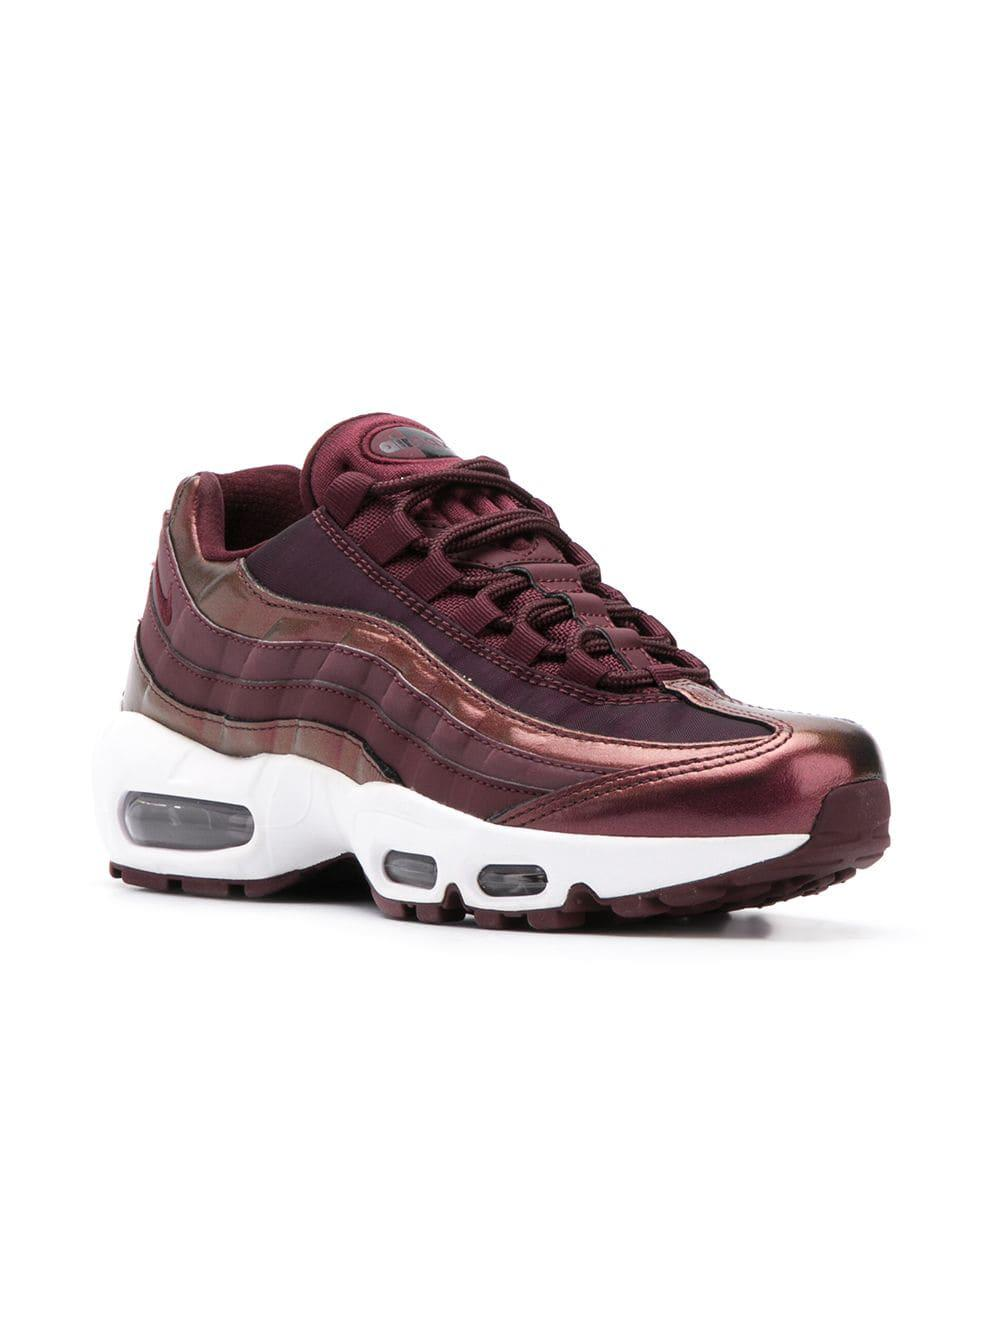 best sneakers ae674 b902a Lyst - Nike Air Max 95 Lux Sneakers in Purple